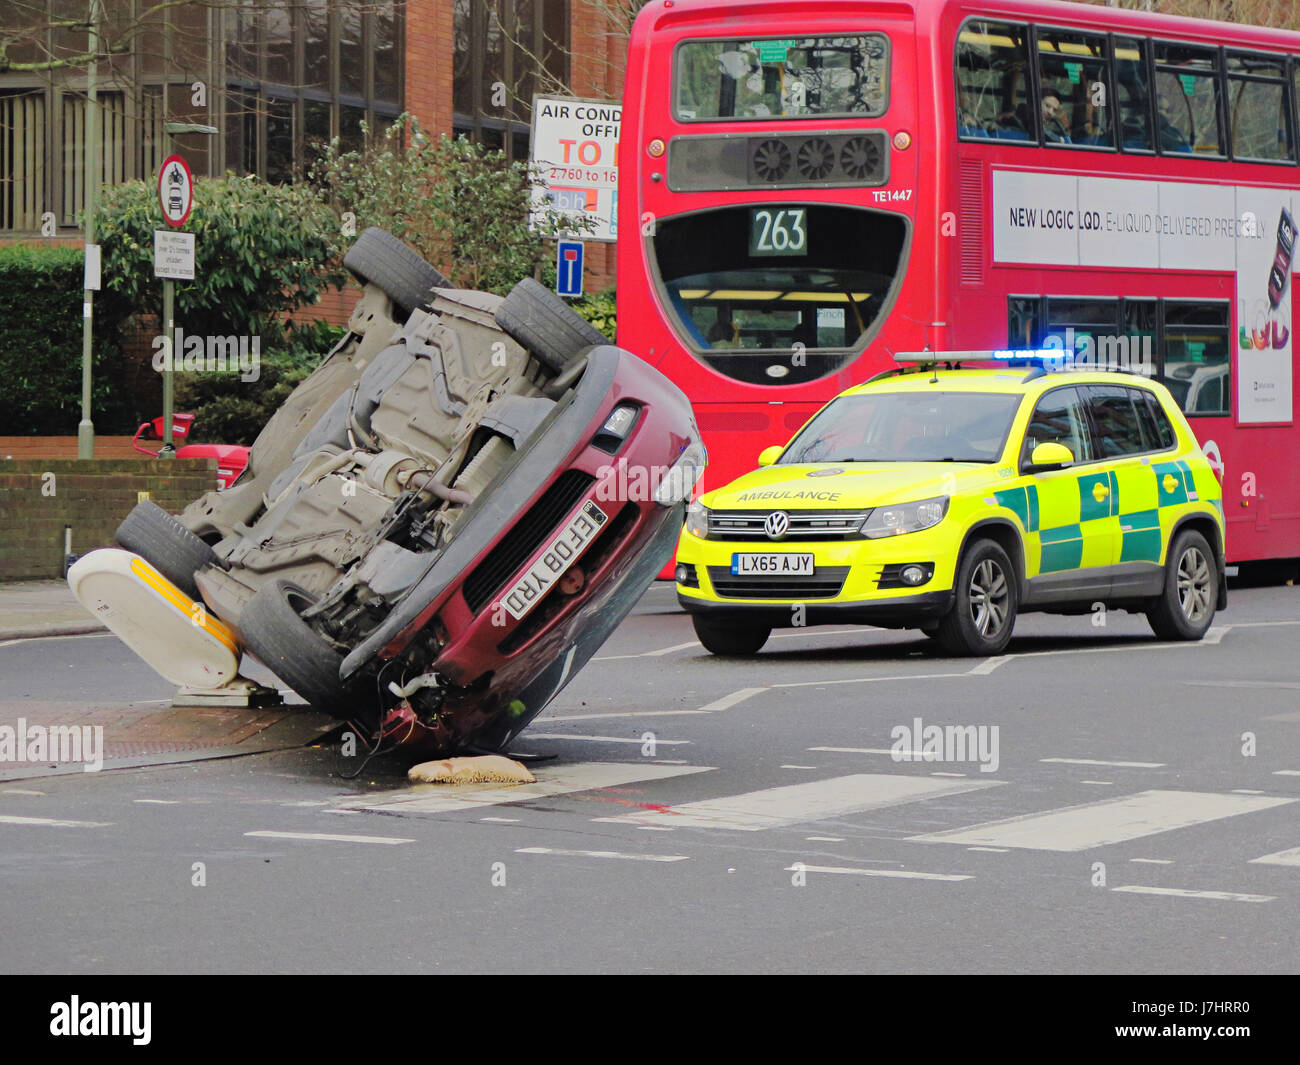 Car upside down after hitting curb - Stock Image